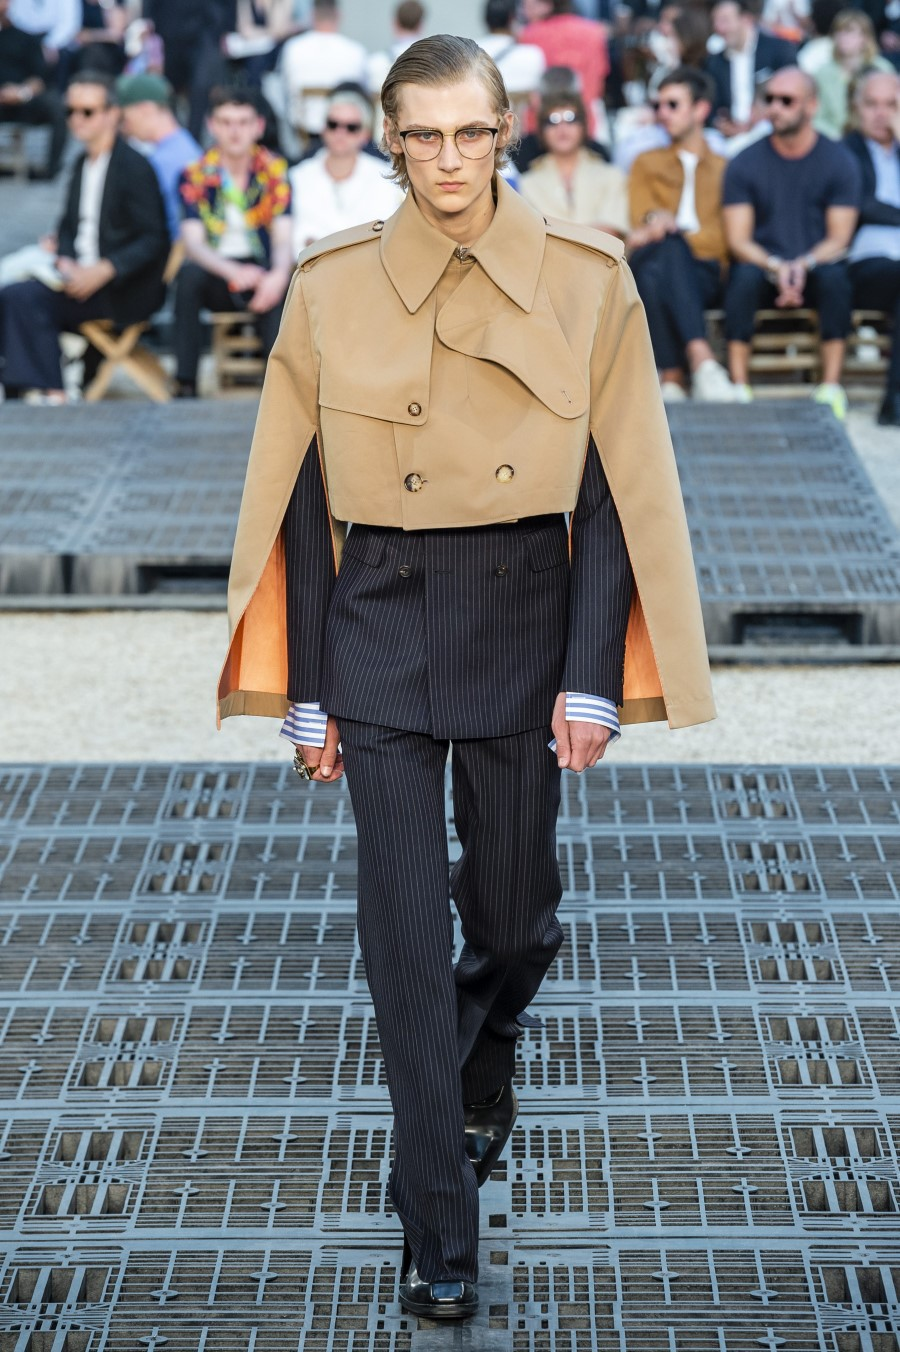 Alexander McQueen Men's Spring Summer 2019 - Paris Fashion Week